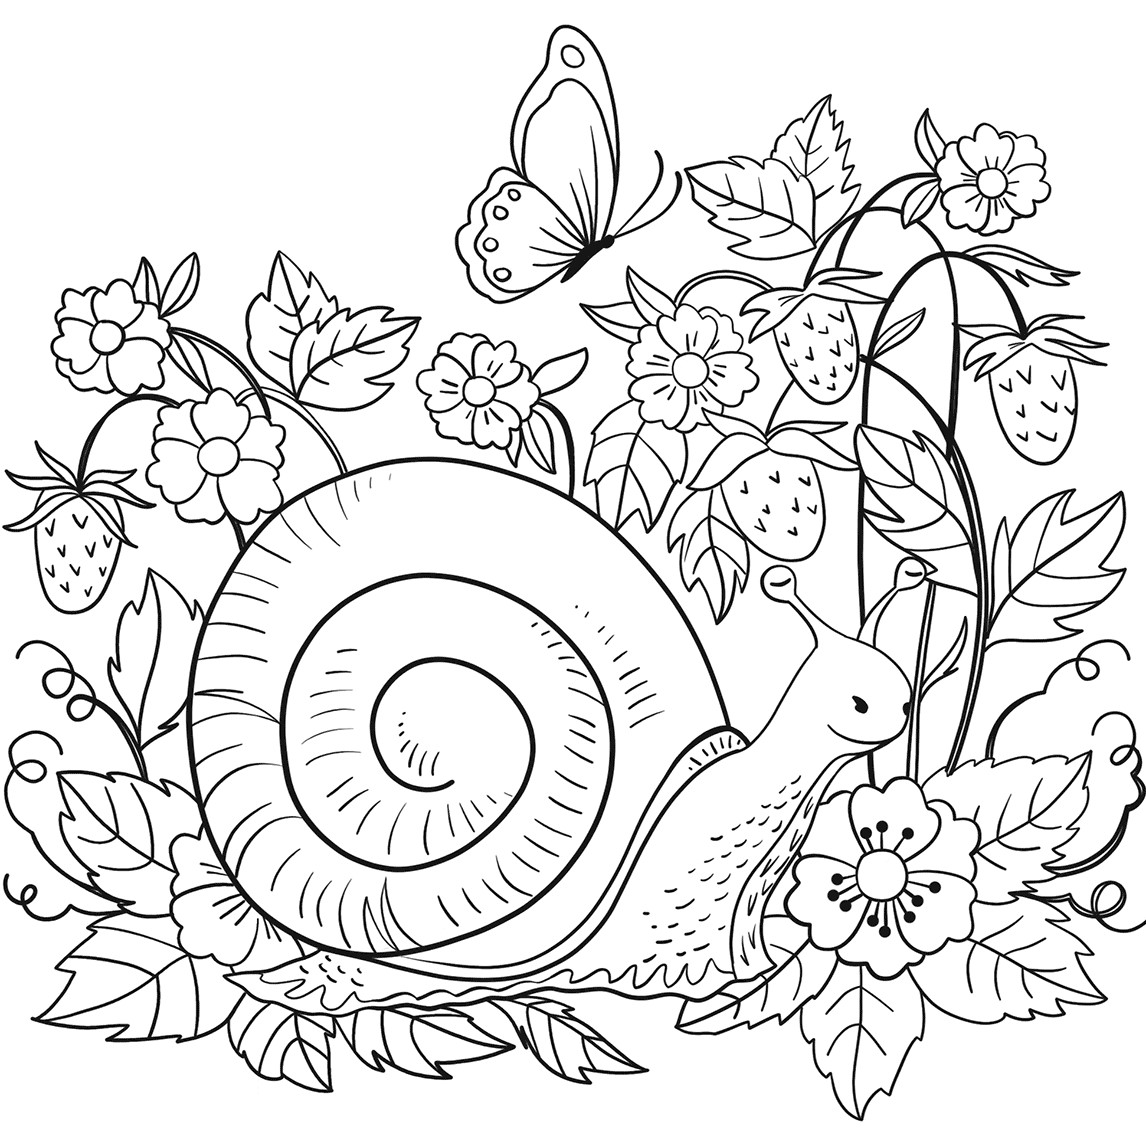 Snail in Strawberry Patch Coloring Page